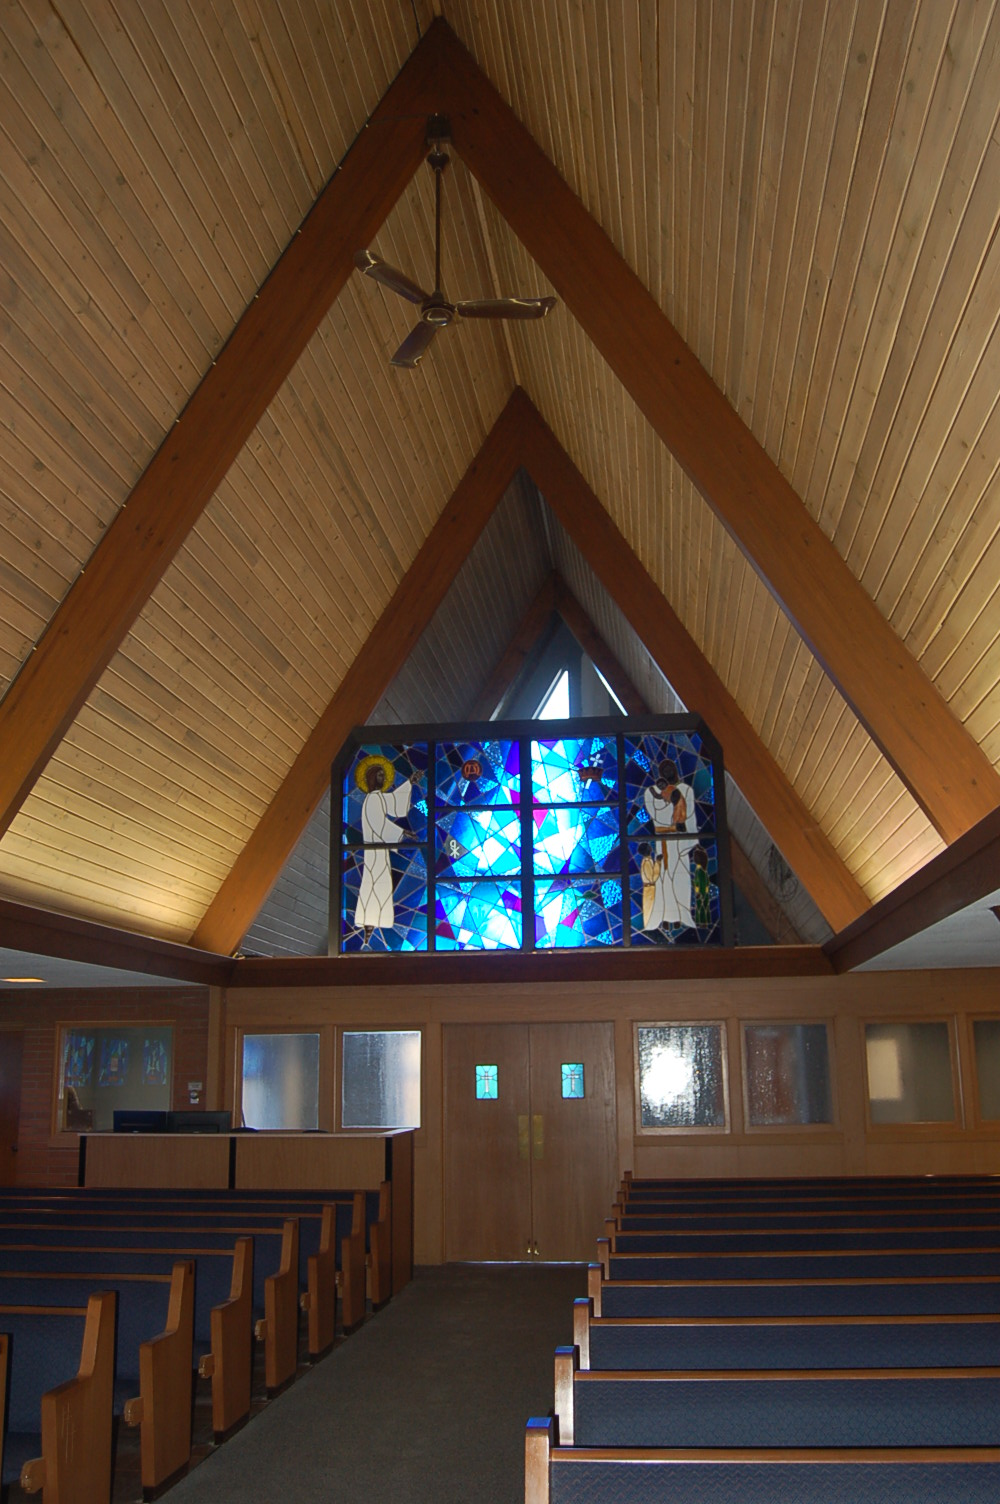 North Sewickley Presbyterian Church (stained glass interior)